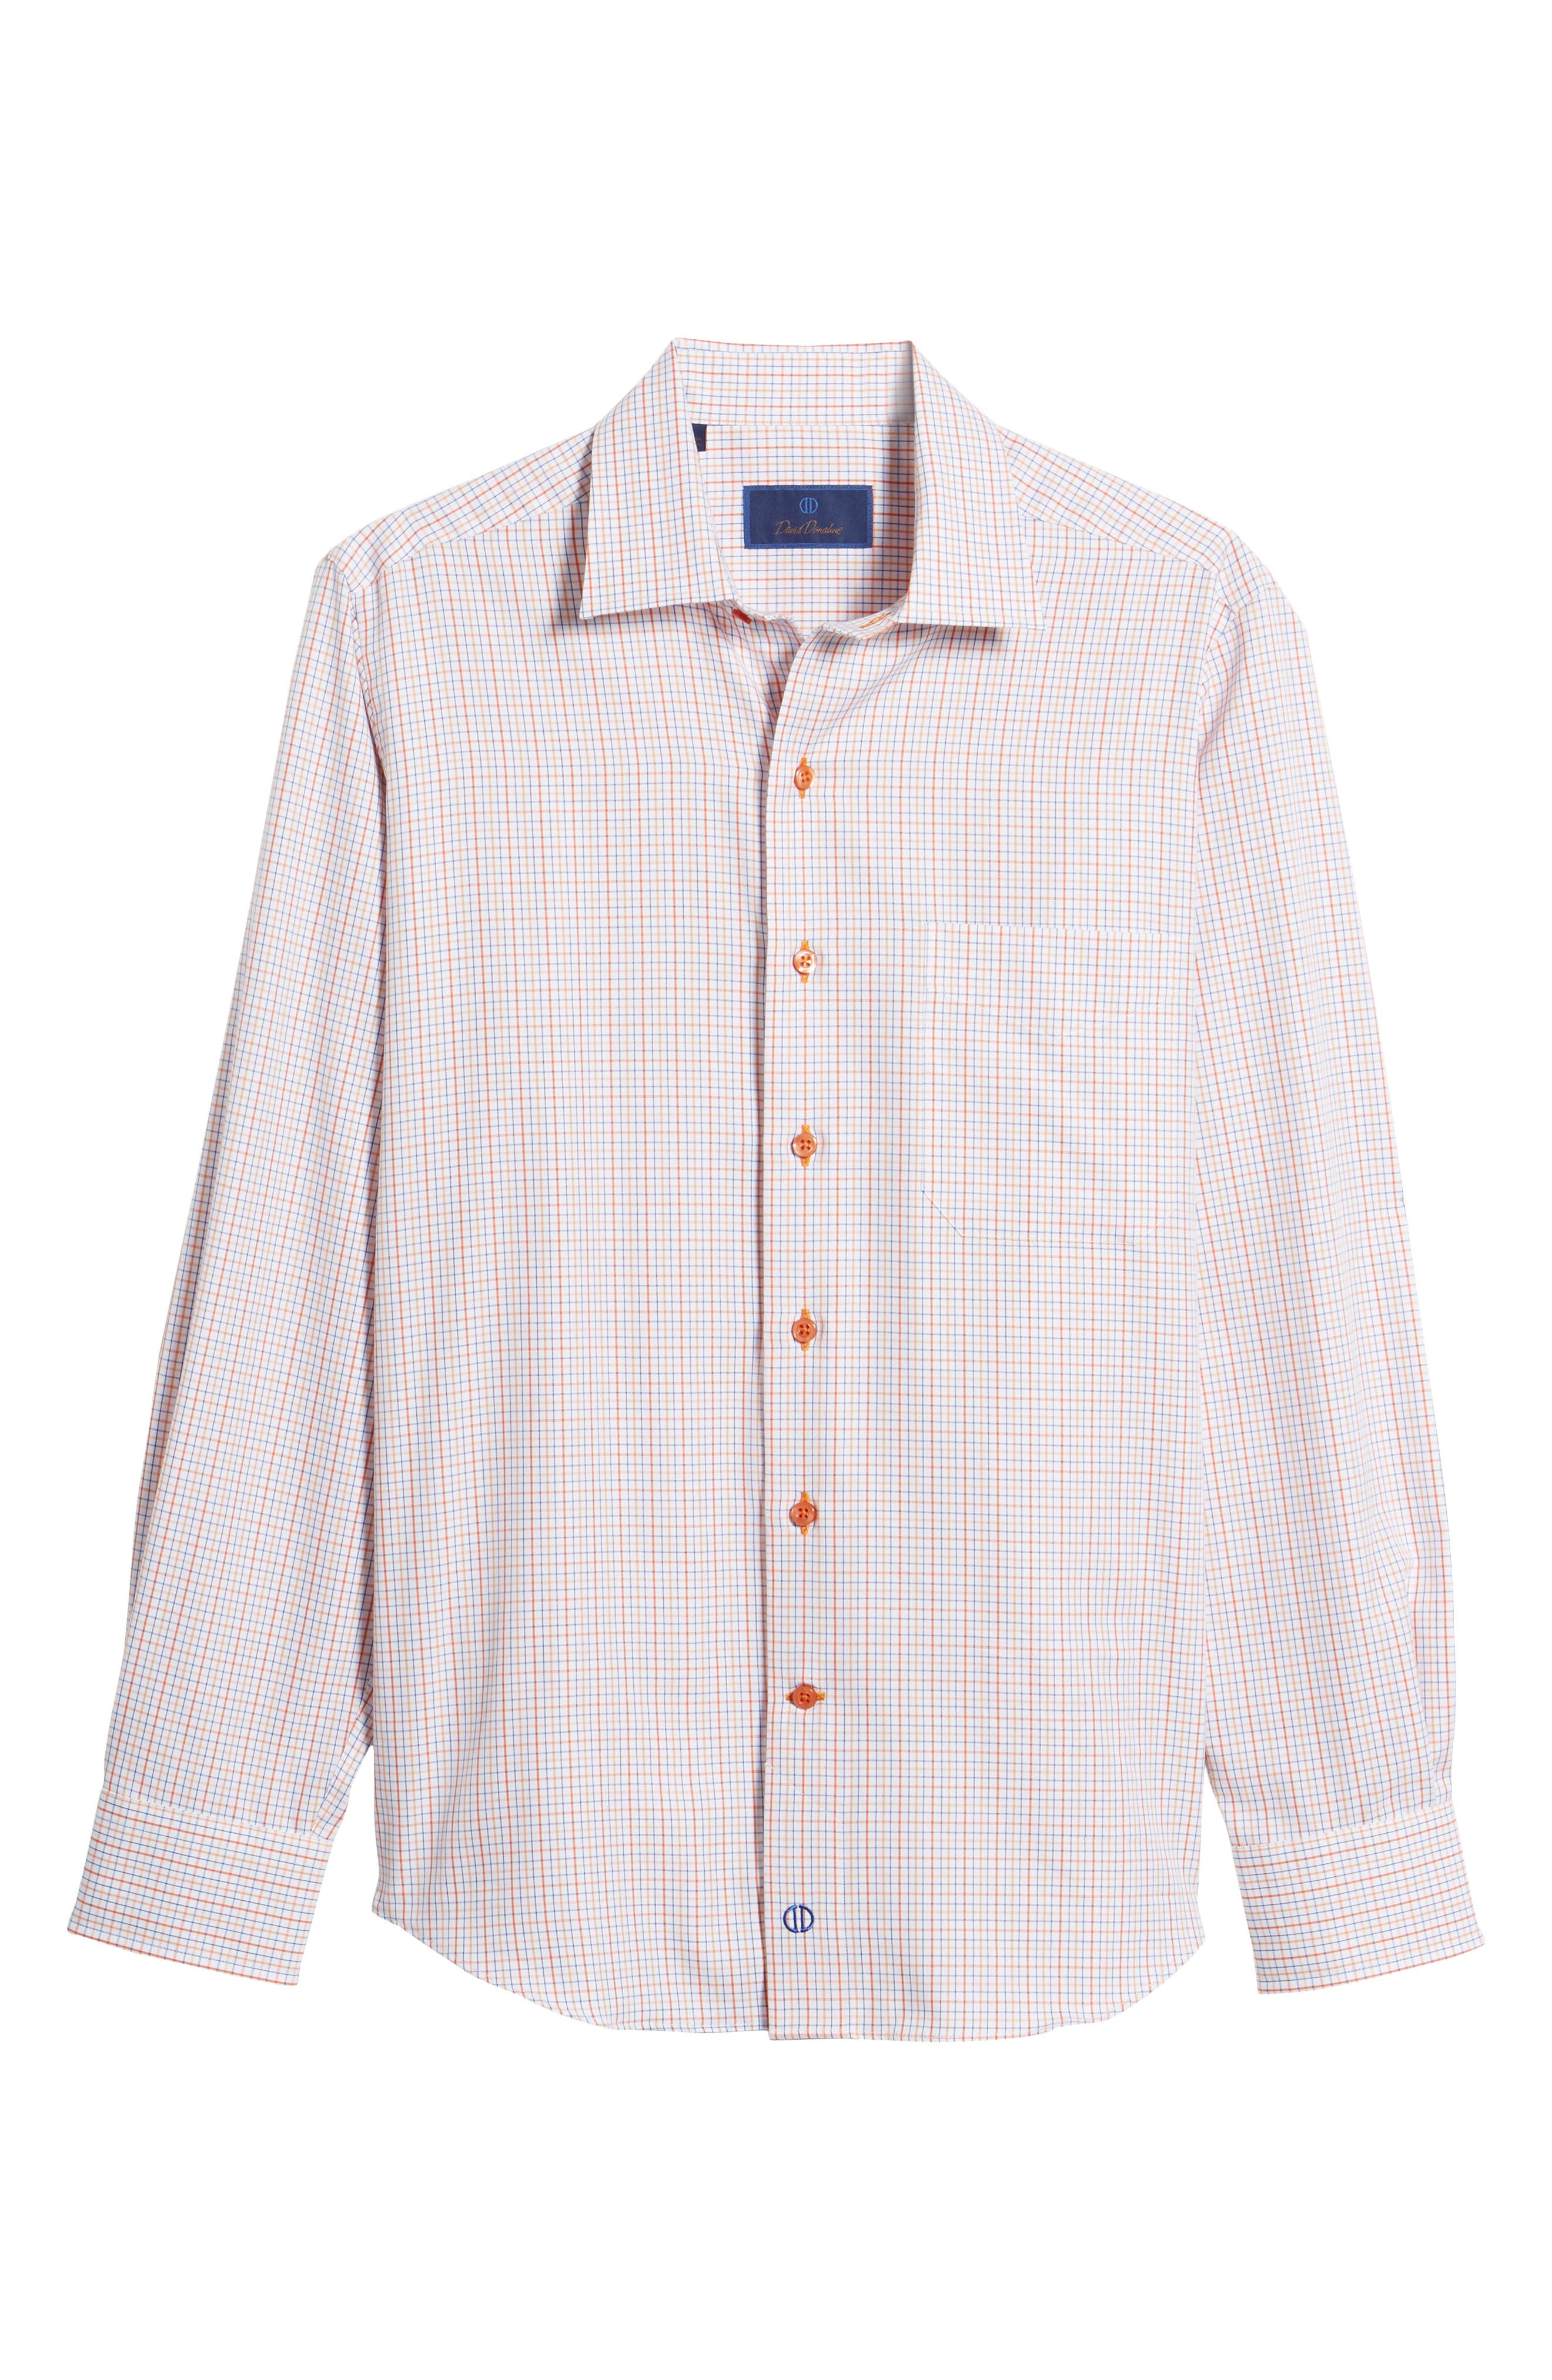 Sport Shirt,                             Alternate thumbnail 6, color,                             Melon